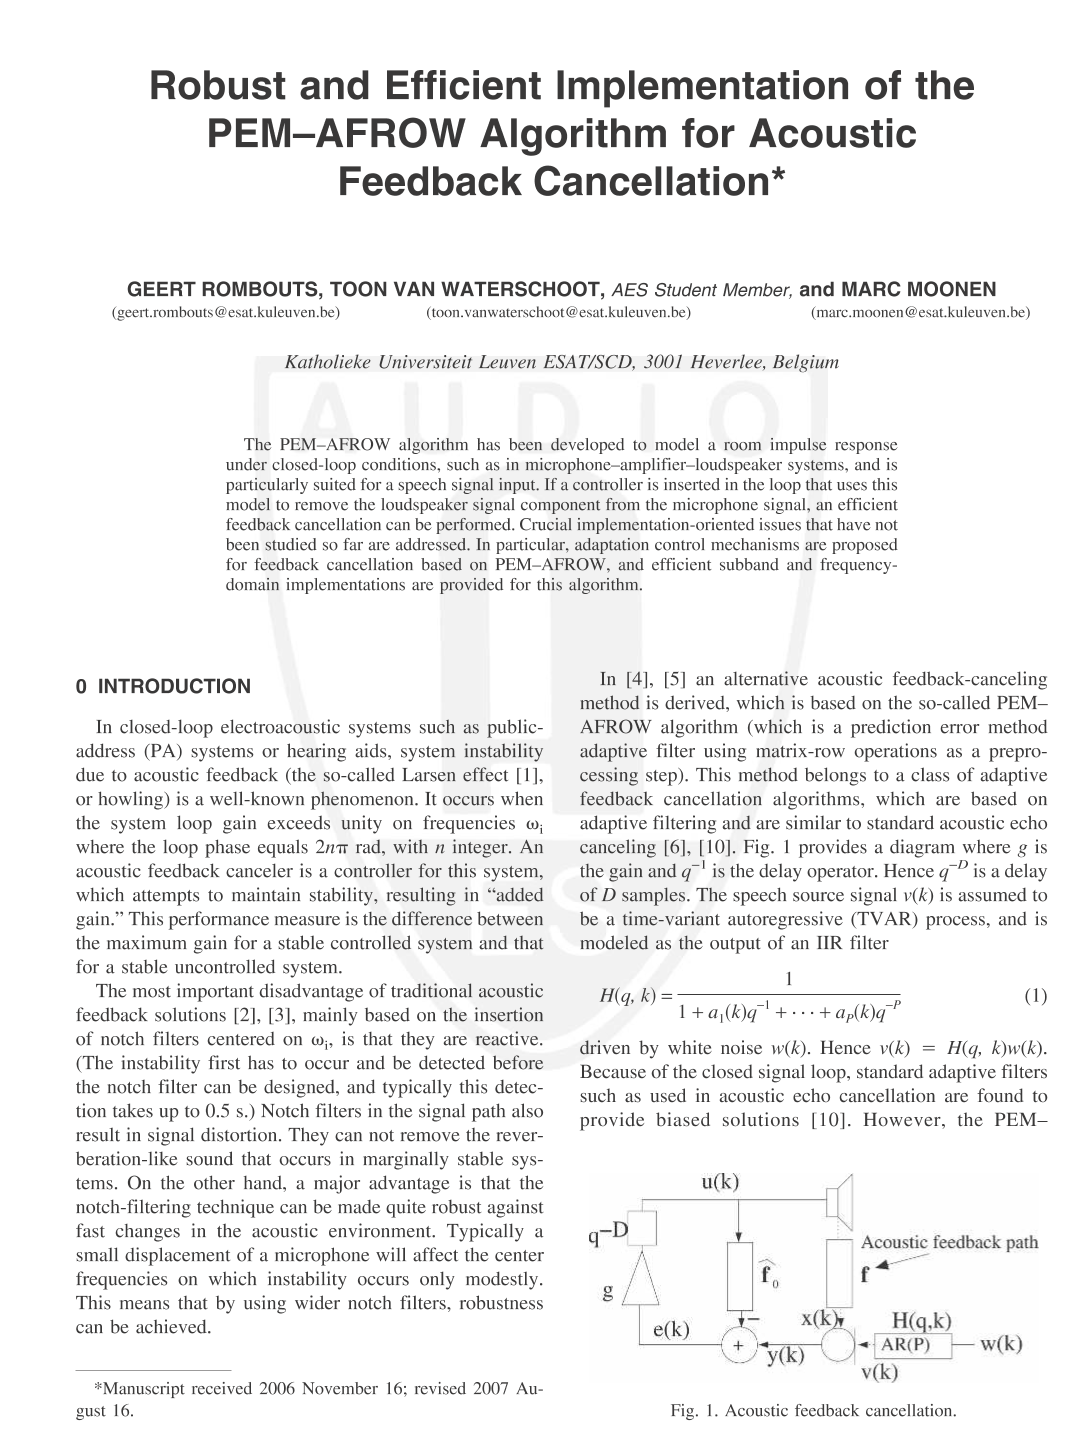 Aes E Library Robust And Efficient Implementation Of The Pemafrow High Q Notch Filter With Active Twin T Network Algorithm For Acousic Feedback Cancellation